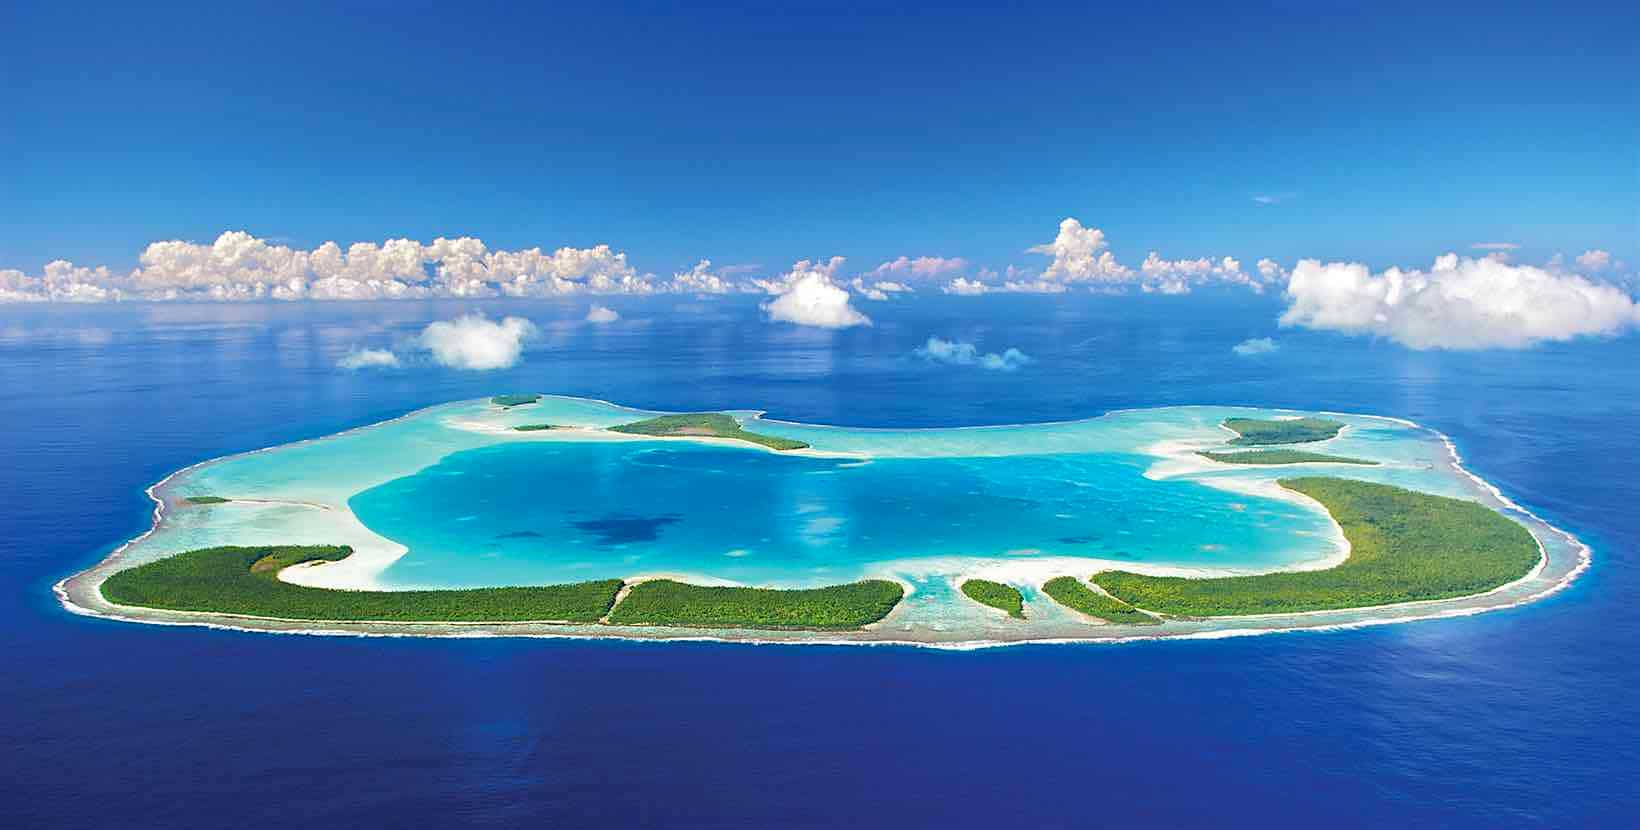 The Brando: Ultra exclusivo resort en una isla privada de Tahití del actor Marlon Brando